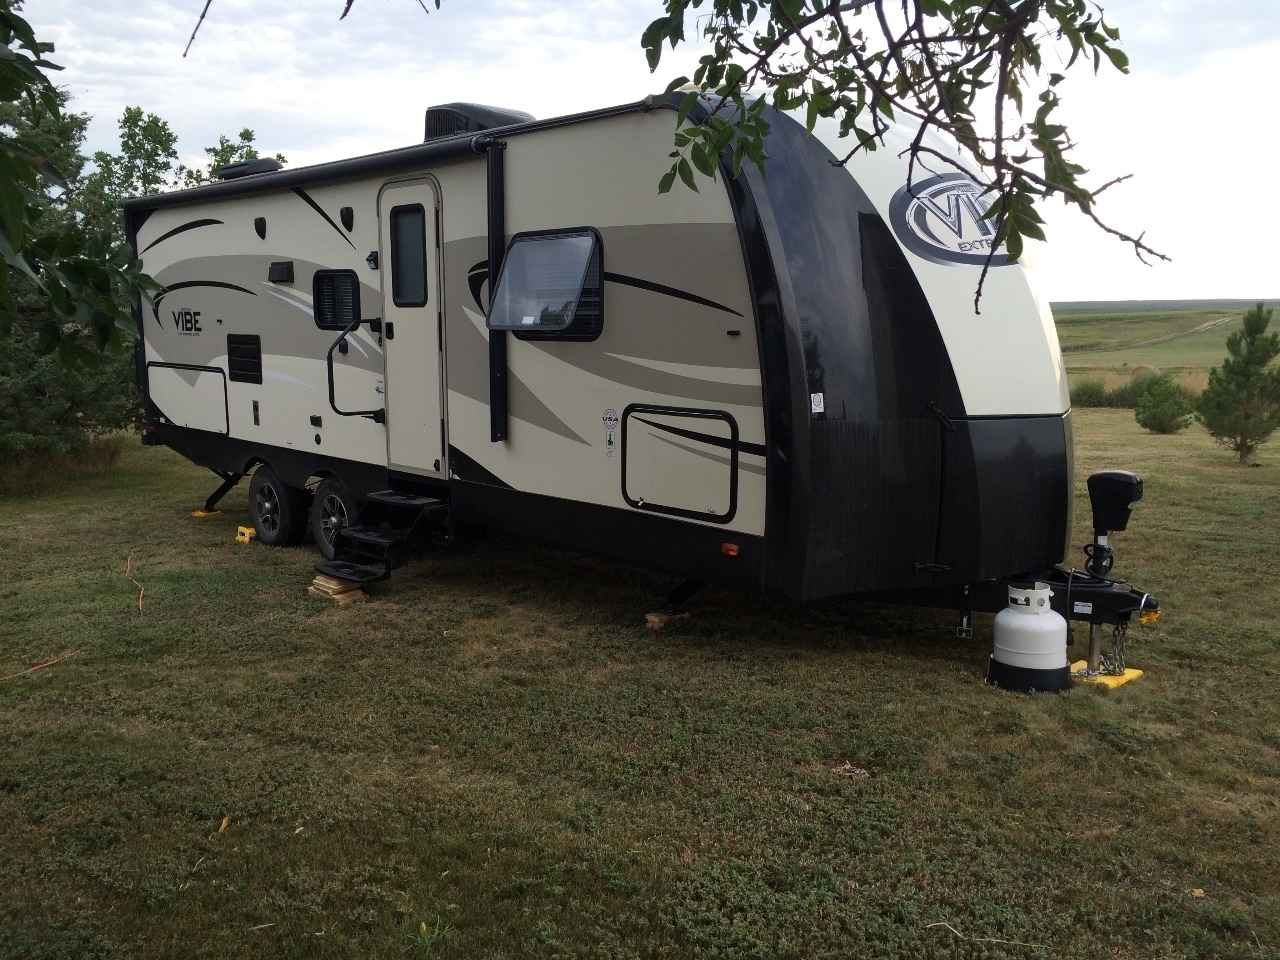 2016 Used Forest River Vibe Extreme Lite 236rbs Travel